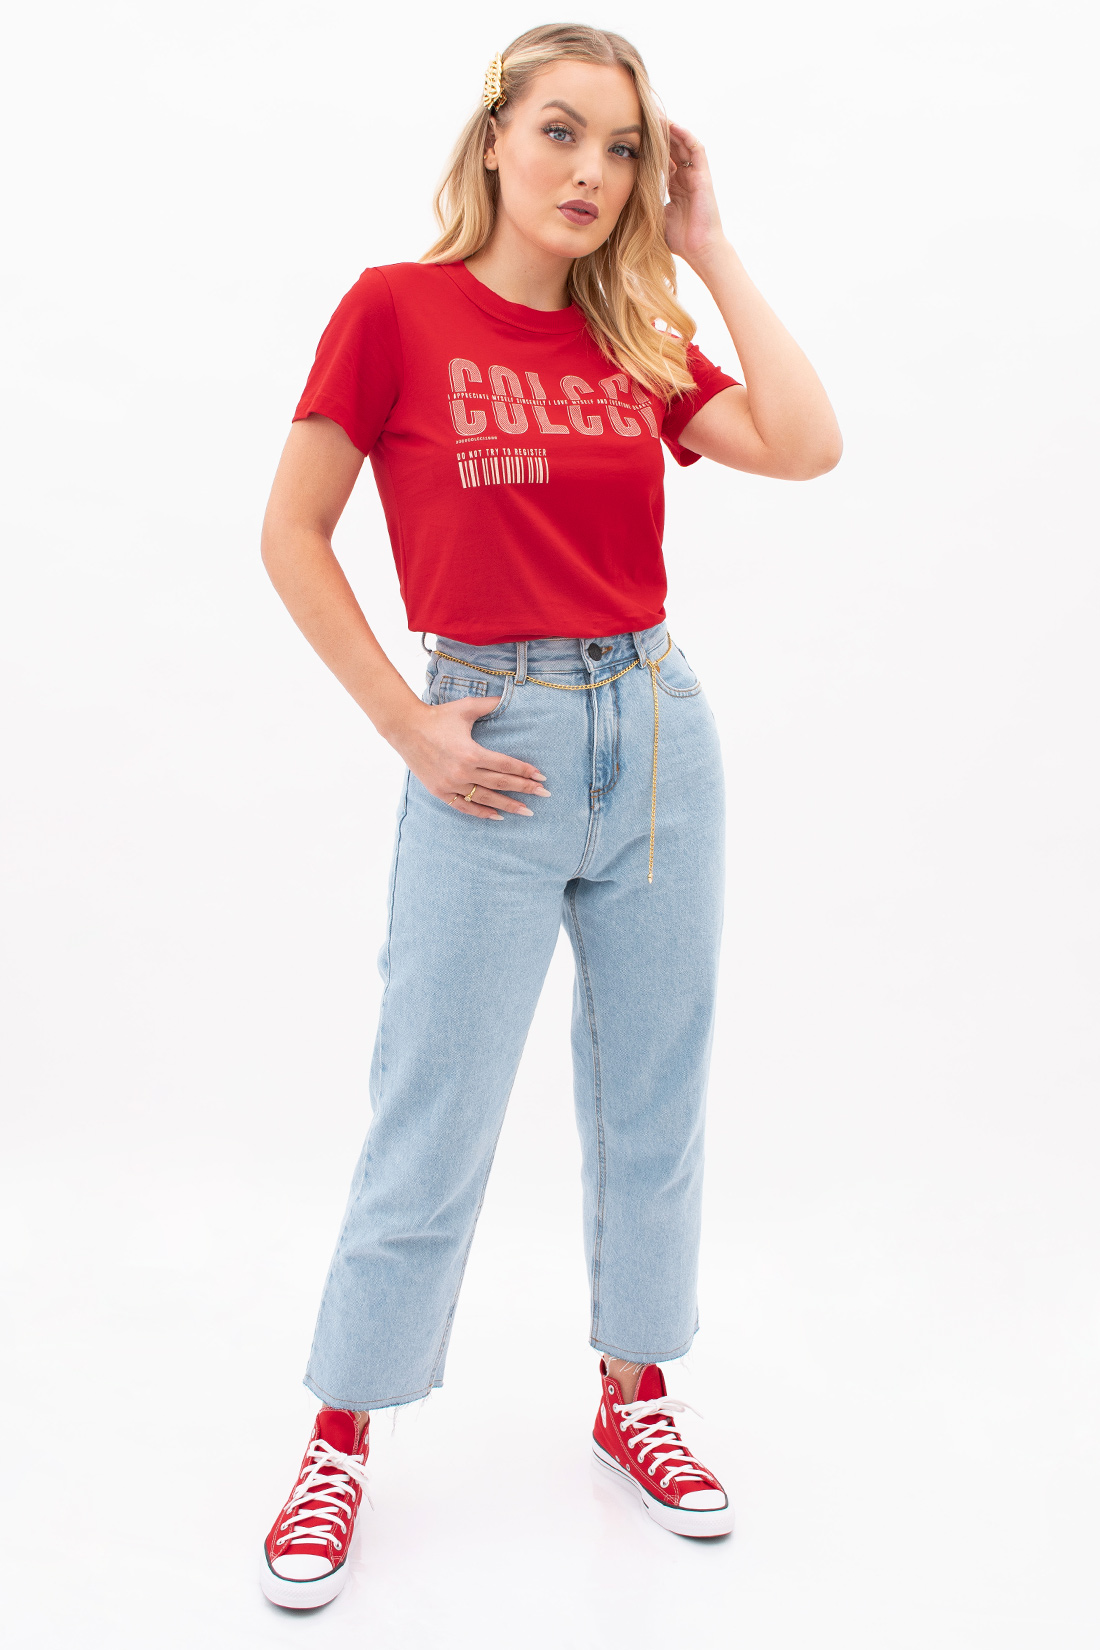 T Shirt Colcci Do Not Try To Register